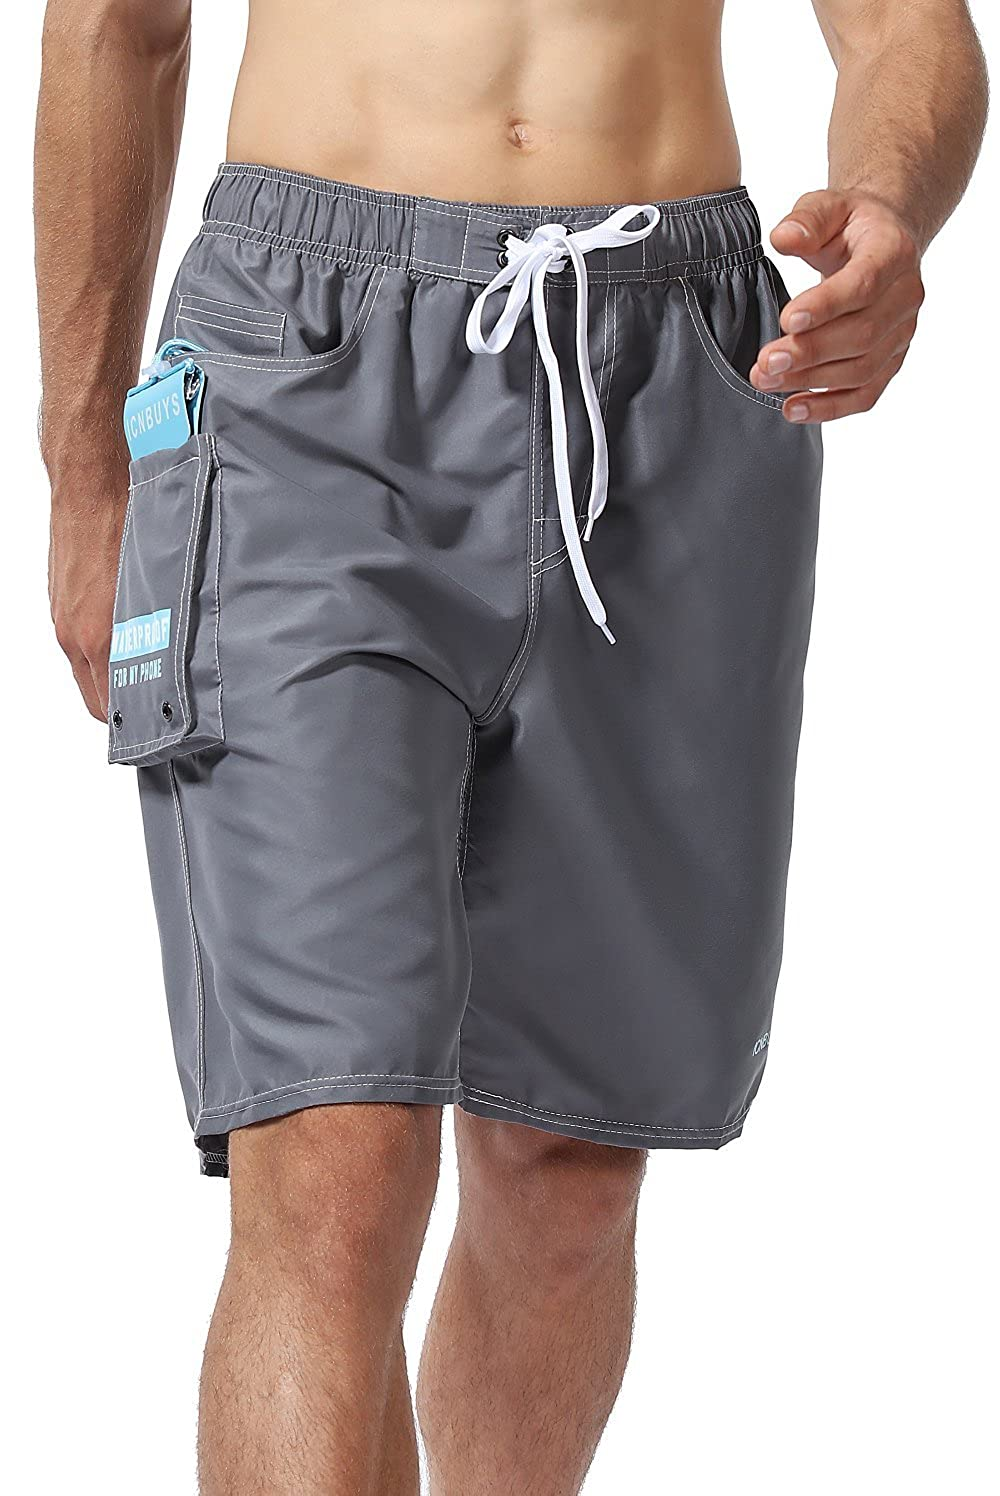 dbe4afc25b ICNBUYS Swim Trunks Beach Trunks with Waterproof Phone Pouch Pocket Grey Quick  Dry | Amazon.com